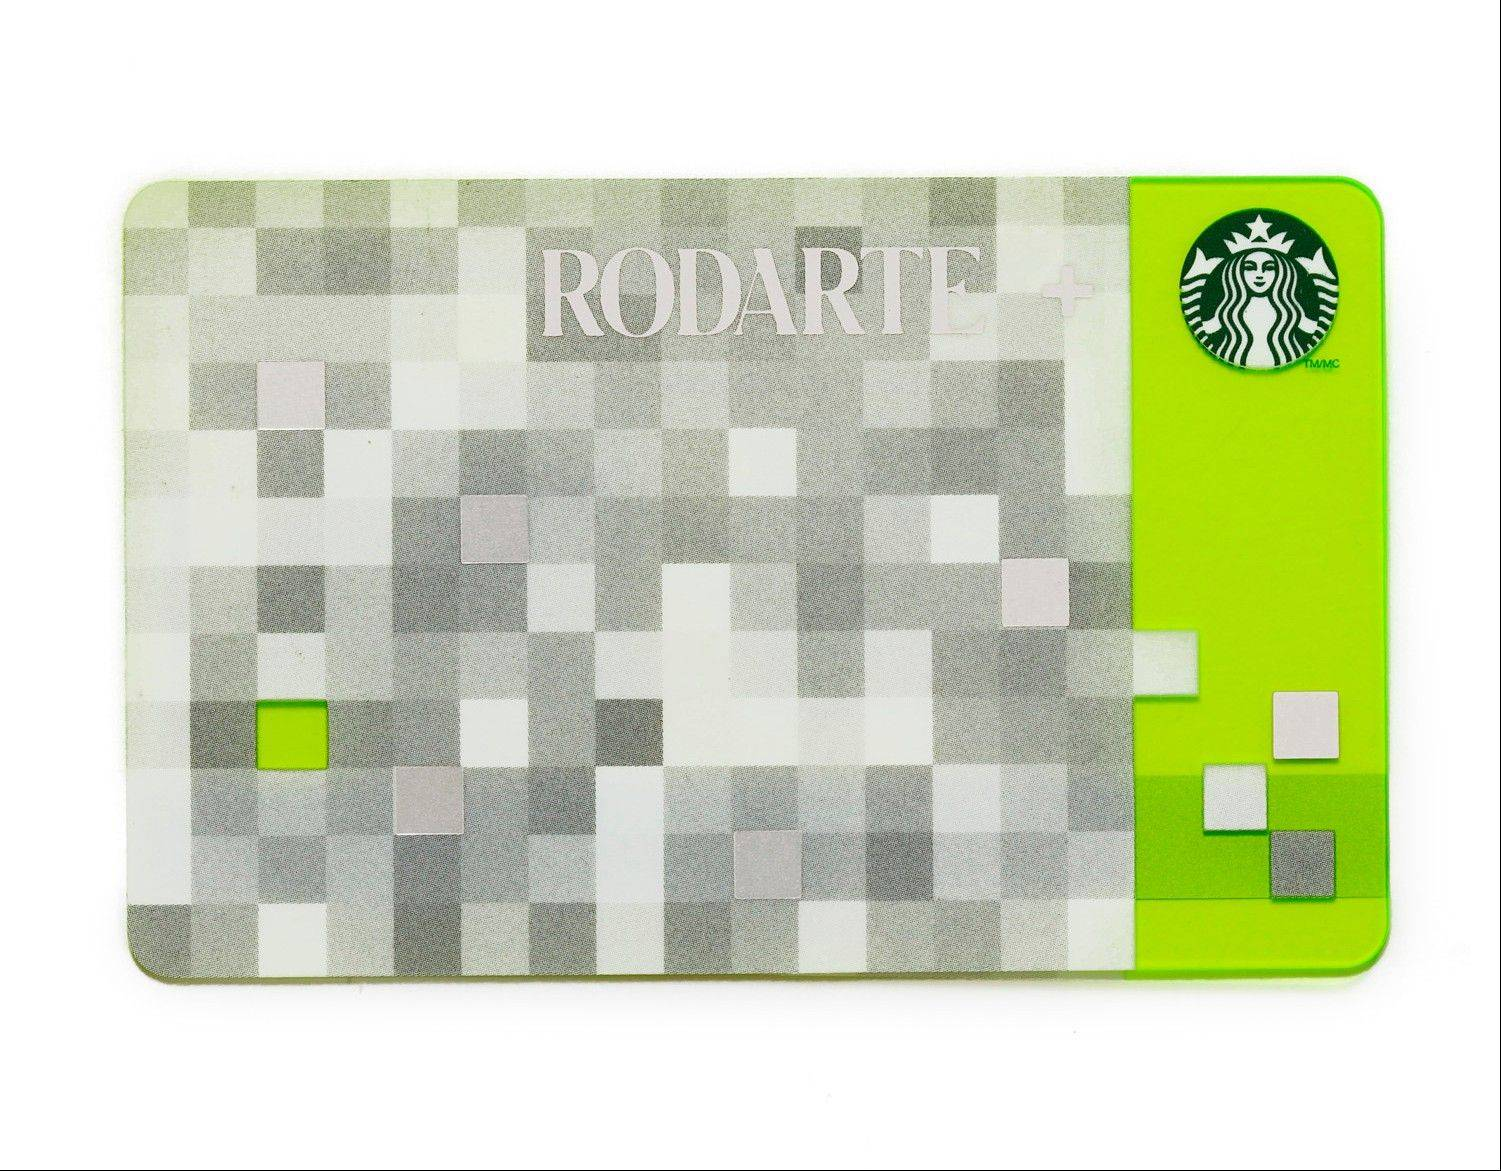 This product image released by Starbucks shows the Rodarte design Starbucks gift card, part of a series of limited-edition products for the holiday season. The card is one of several Rodarte-designed items including tote bags, cup sleeves and mug. The signature pattern features a pixelated checkerboard of gray, white and silver set against different shades of green.